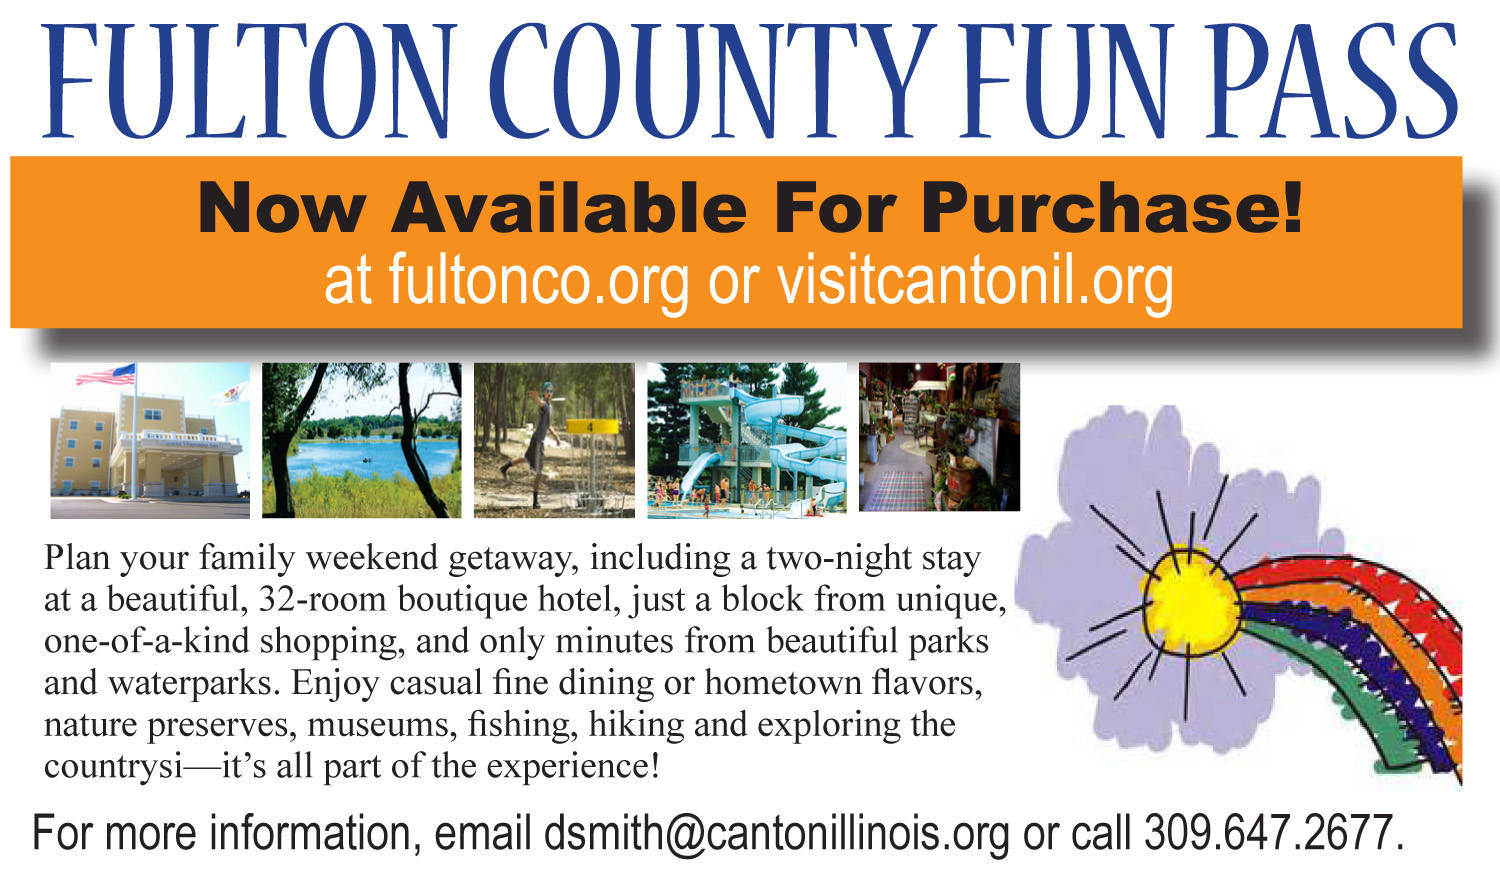 Fulton County Fun Pass Web Available Banner